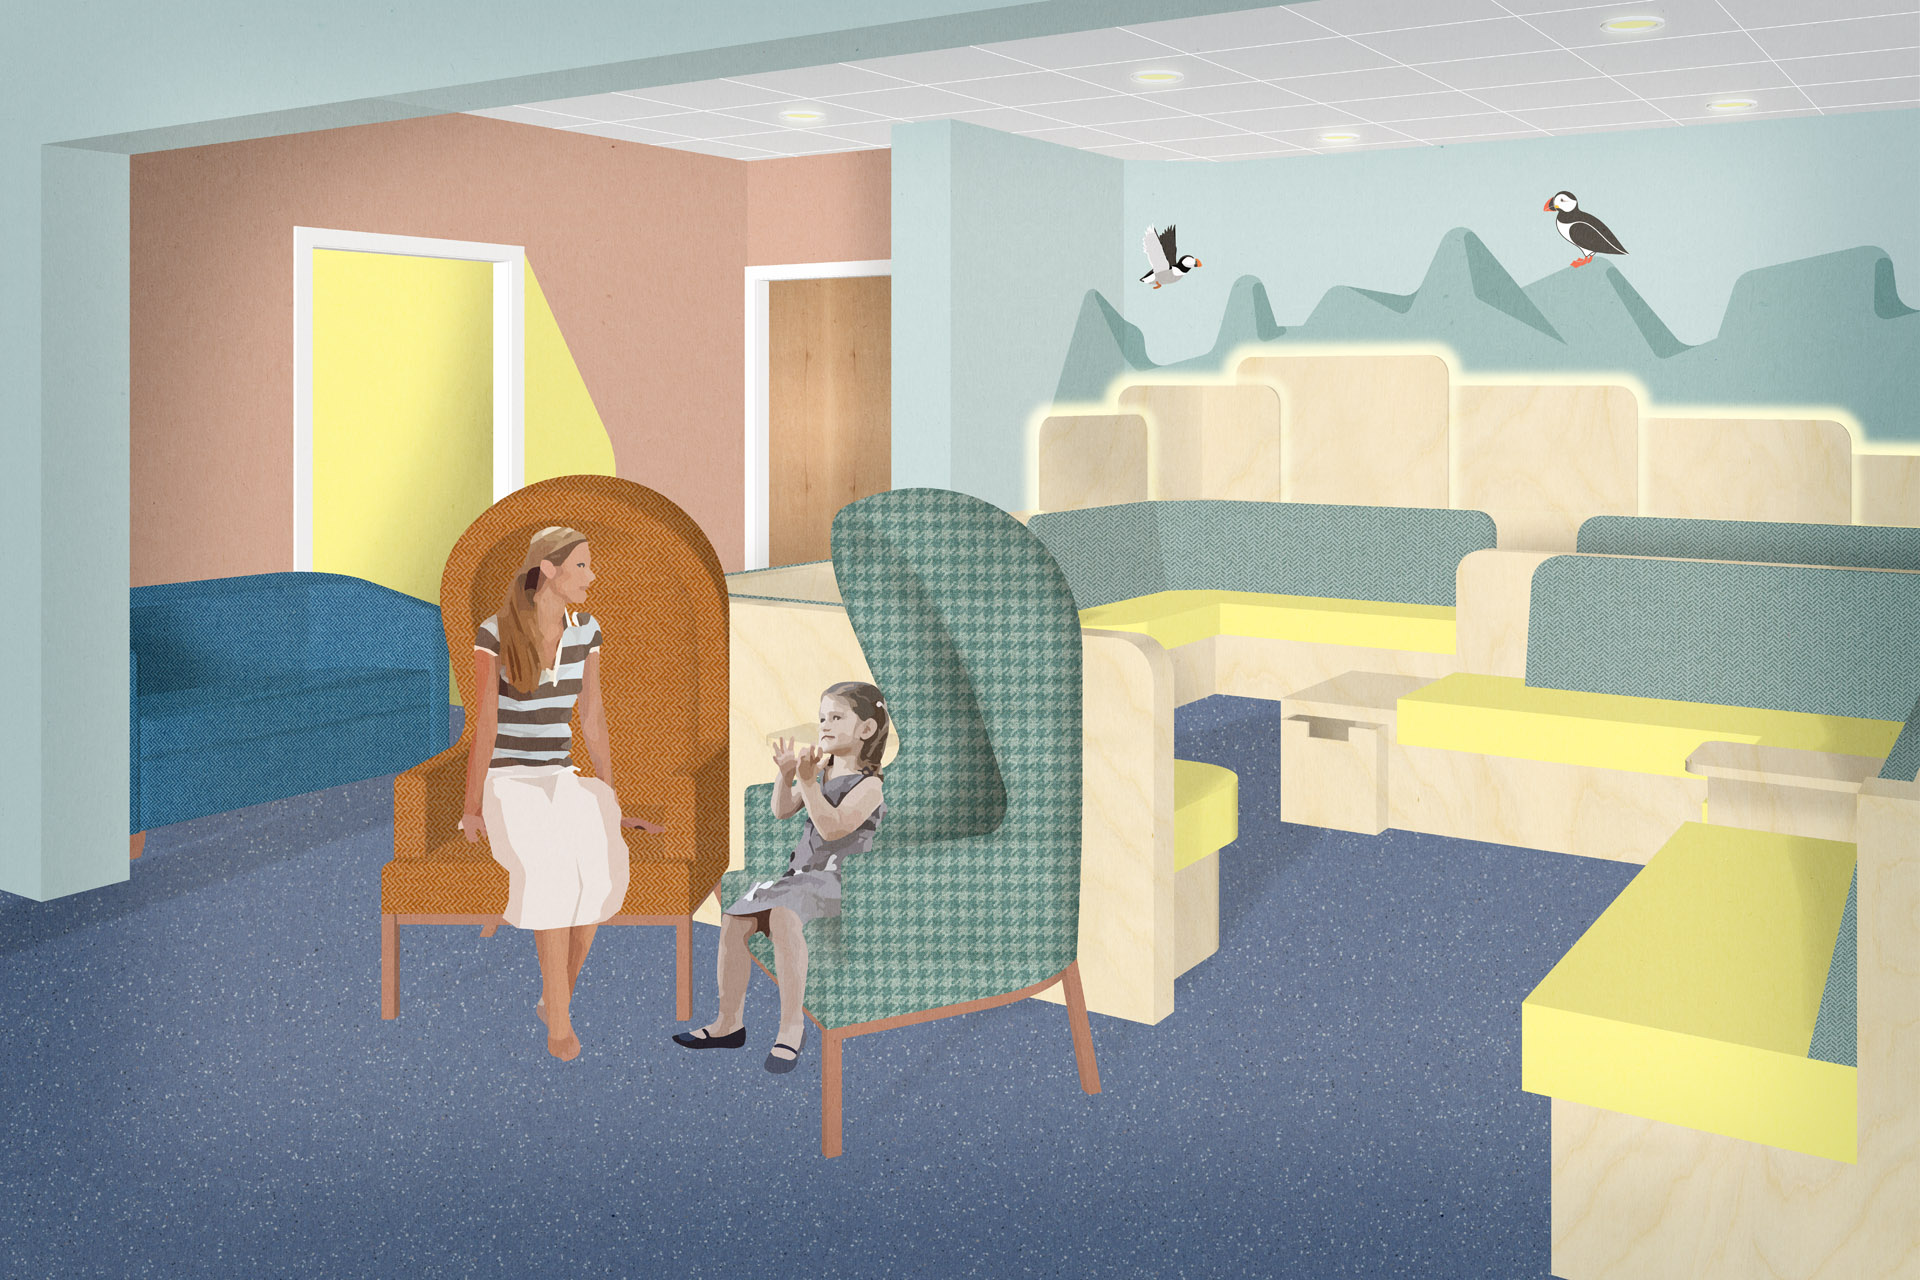 Waiting room with bespoke seating and illuminated wall illustrations